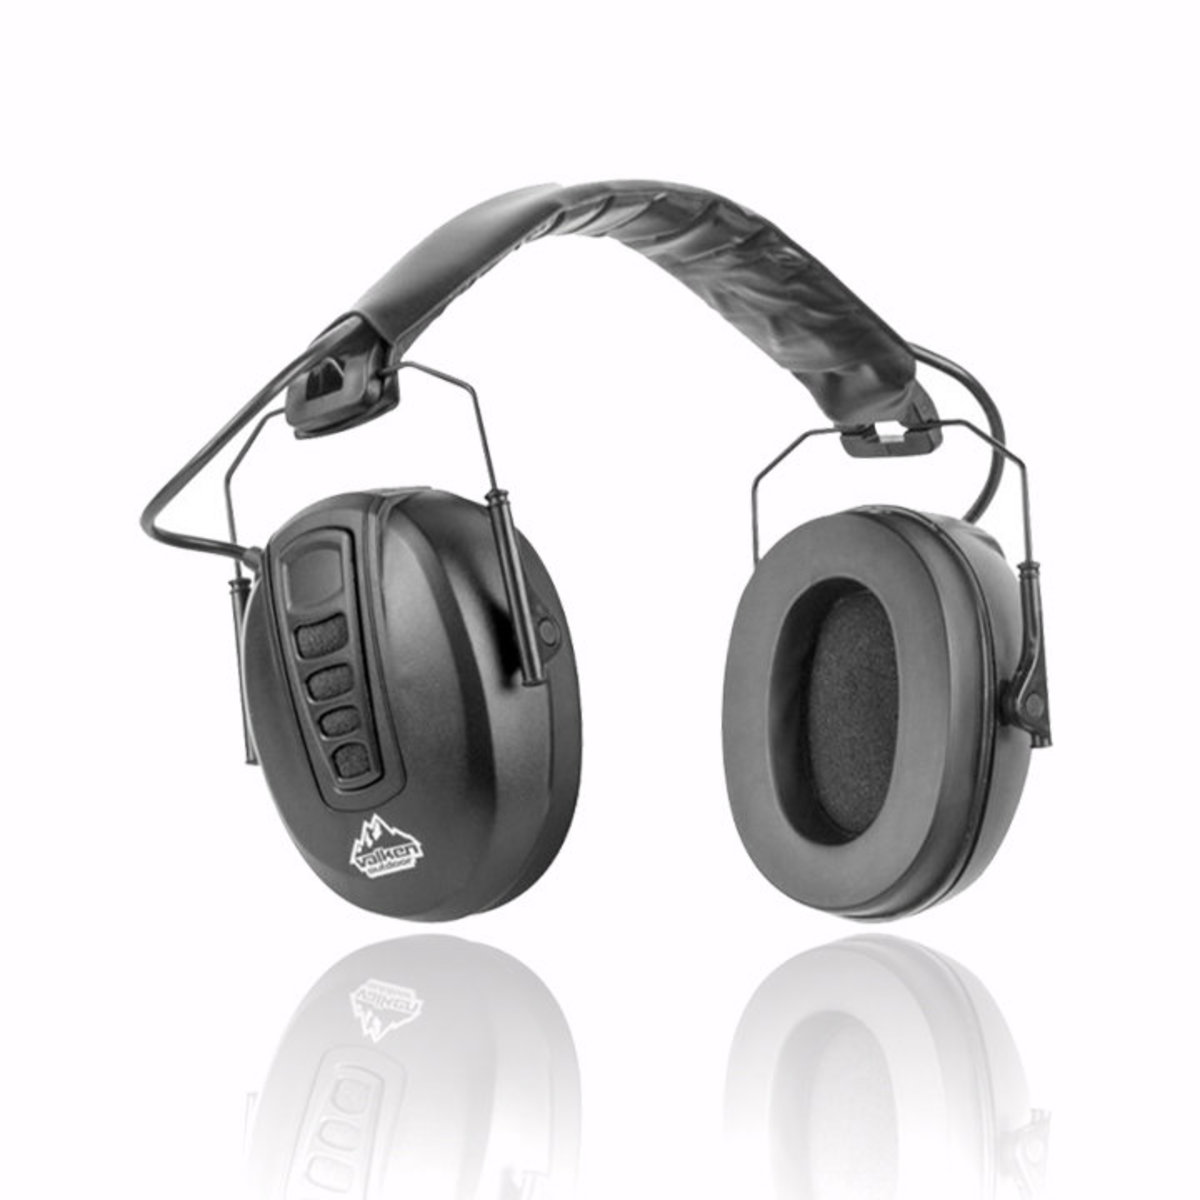 View larger image of Valken Ear Shieldz Full Cover Electronic Stereo Earmuffs